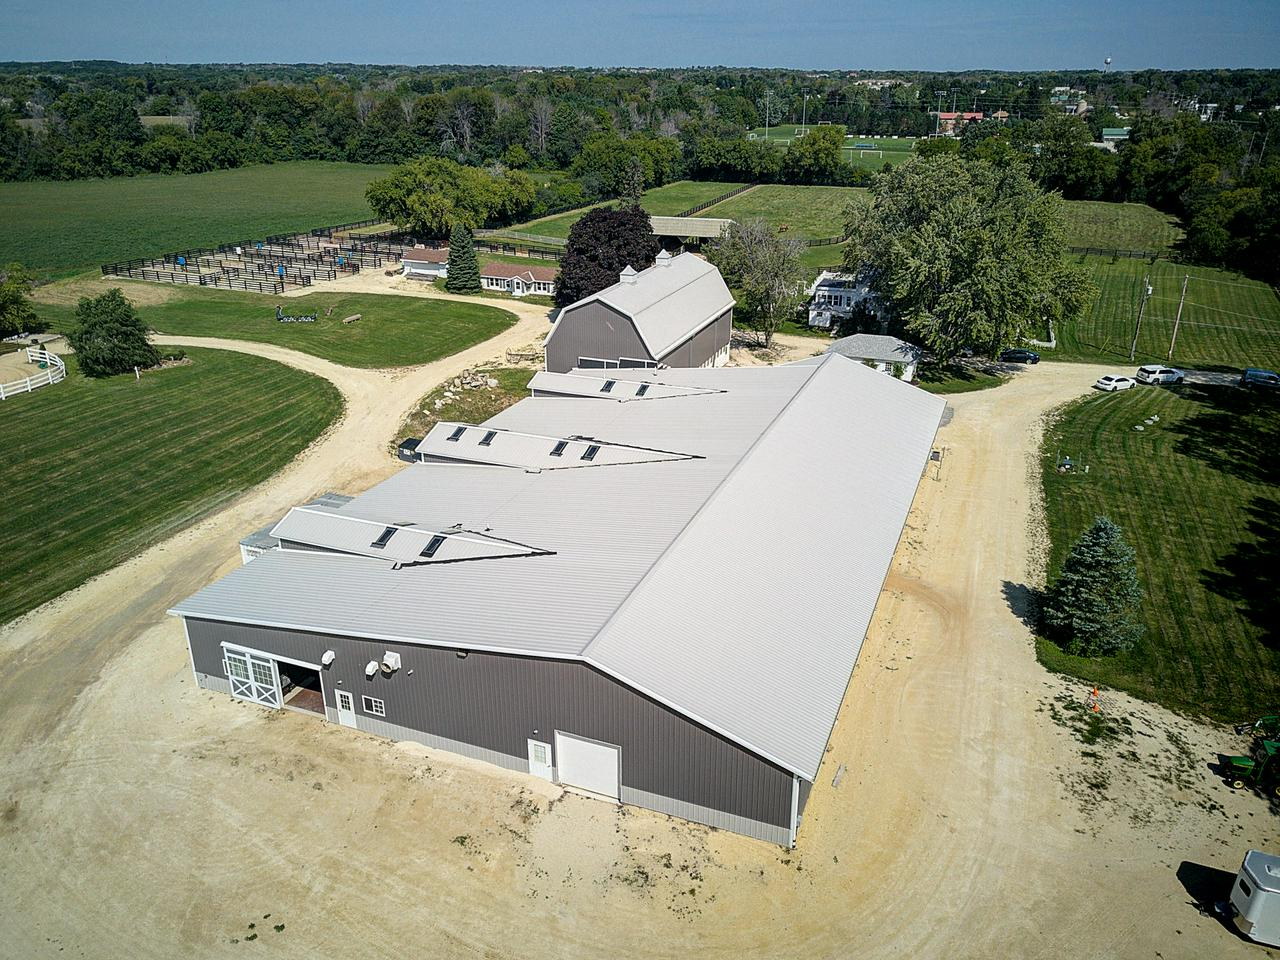 This well-appointed, 28 +/- acre horse farm is the perfect place to realize your equestrian dreams. Surrounded by farmland yet close to amenities, it was completely renovated in 2016. Horse enthusiasts will appreciate the equestrian spa and 16 custom, 16x12 stalls, each with video monitor. The main barn has in-floor heat and includes wash stall, tack lockers & lounge with kitchen, fireplace and powder rooms. A second barn can be converted for stalls or boarding. The heated 60x150 indoor arena ensures comfort. The 200x300 outdoor arena is perfectly situated for beautiful views while training. The Kentucky board pastures and dry lots with automatic waterers make horse care easy. Two homes on the property provide a rental option. This is one property you need to experience to believe!